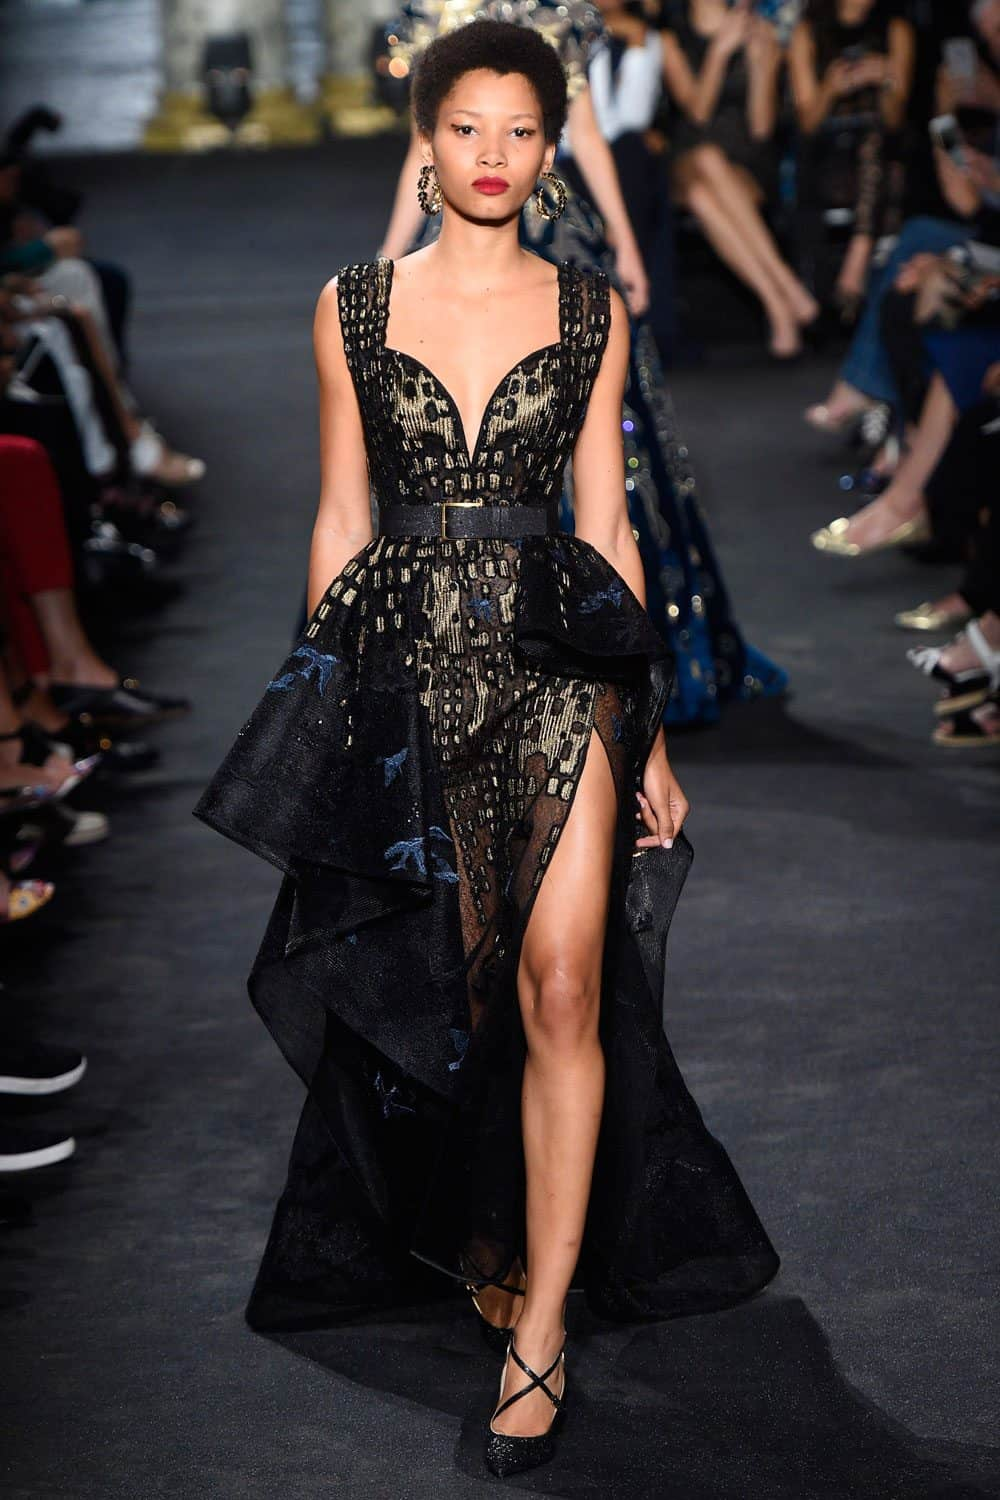 elie-saab-Photo-Kim-Weston-Arnold.-Indigital.tv5_